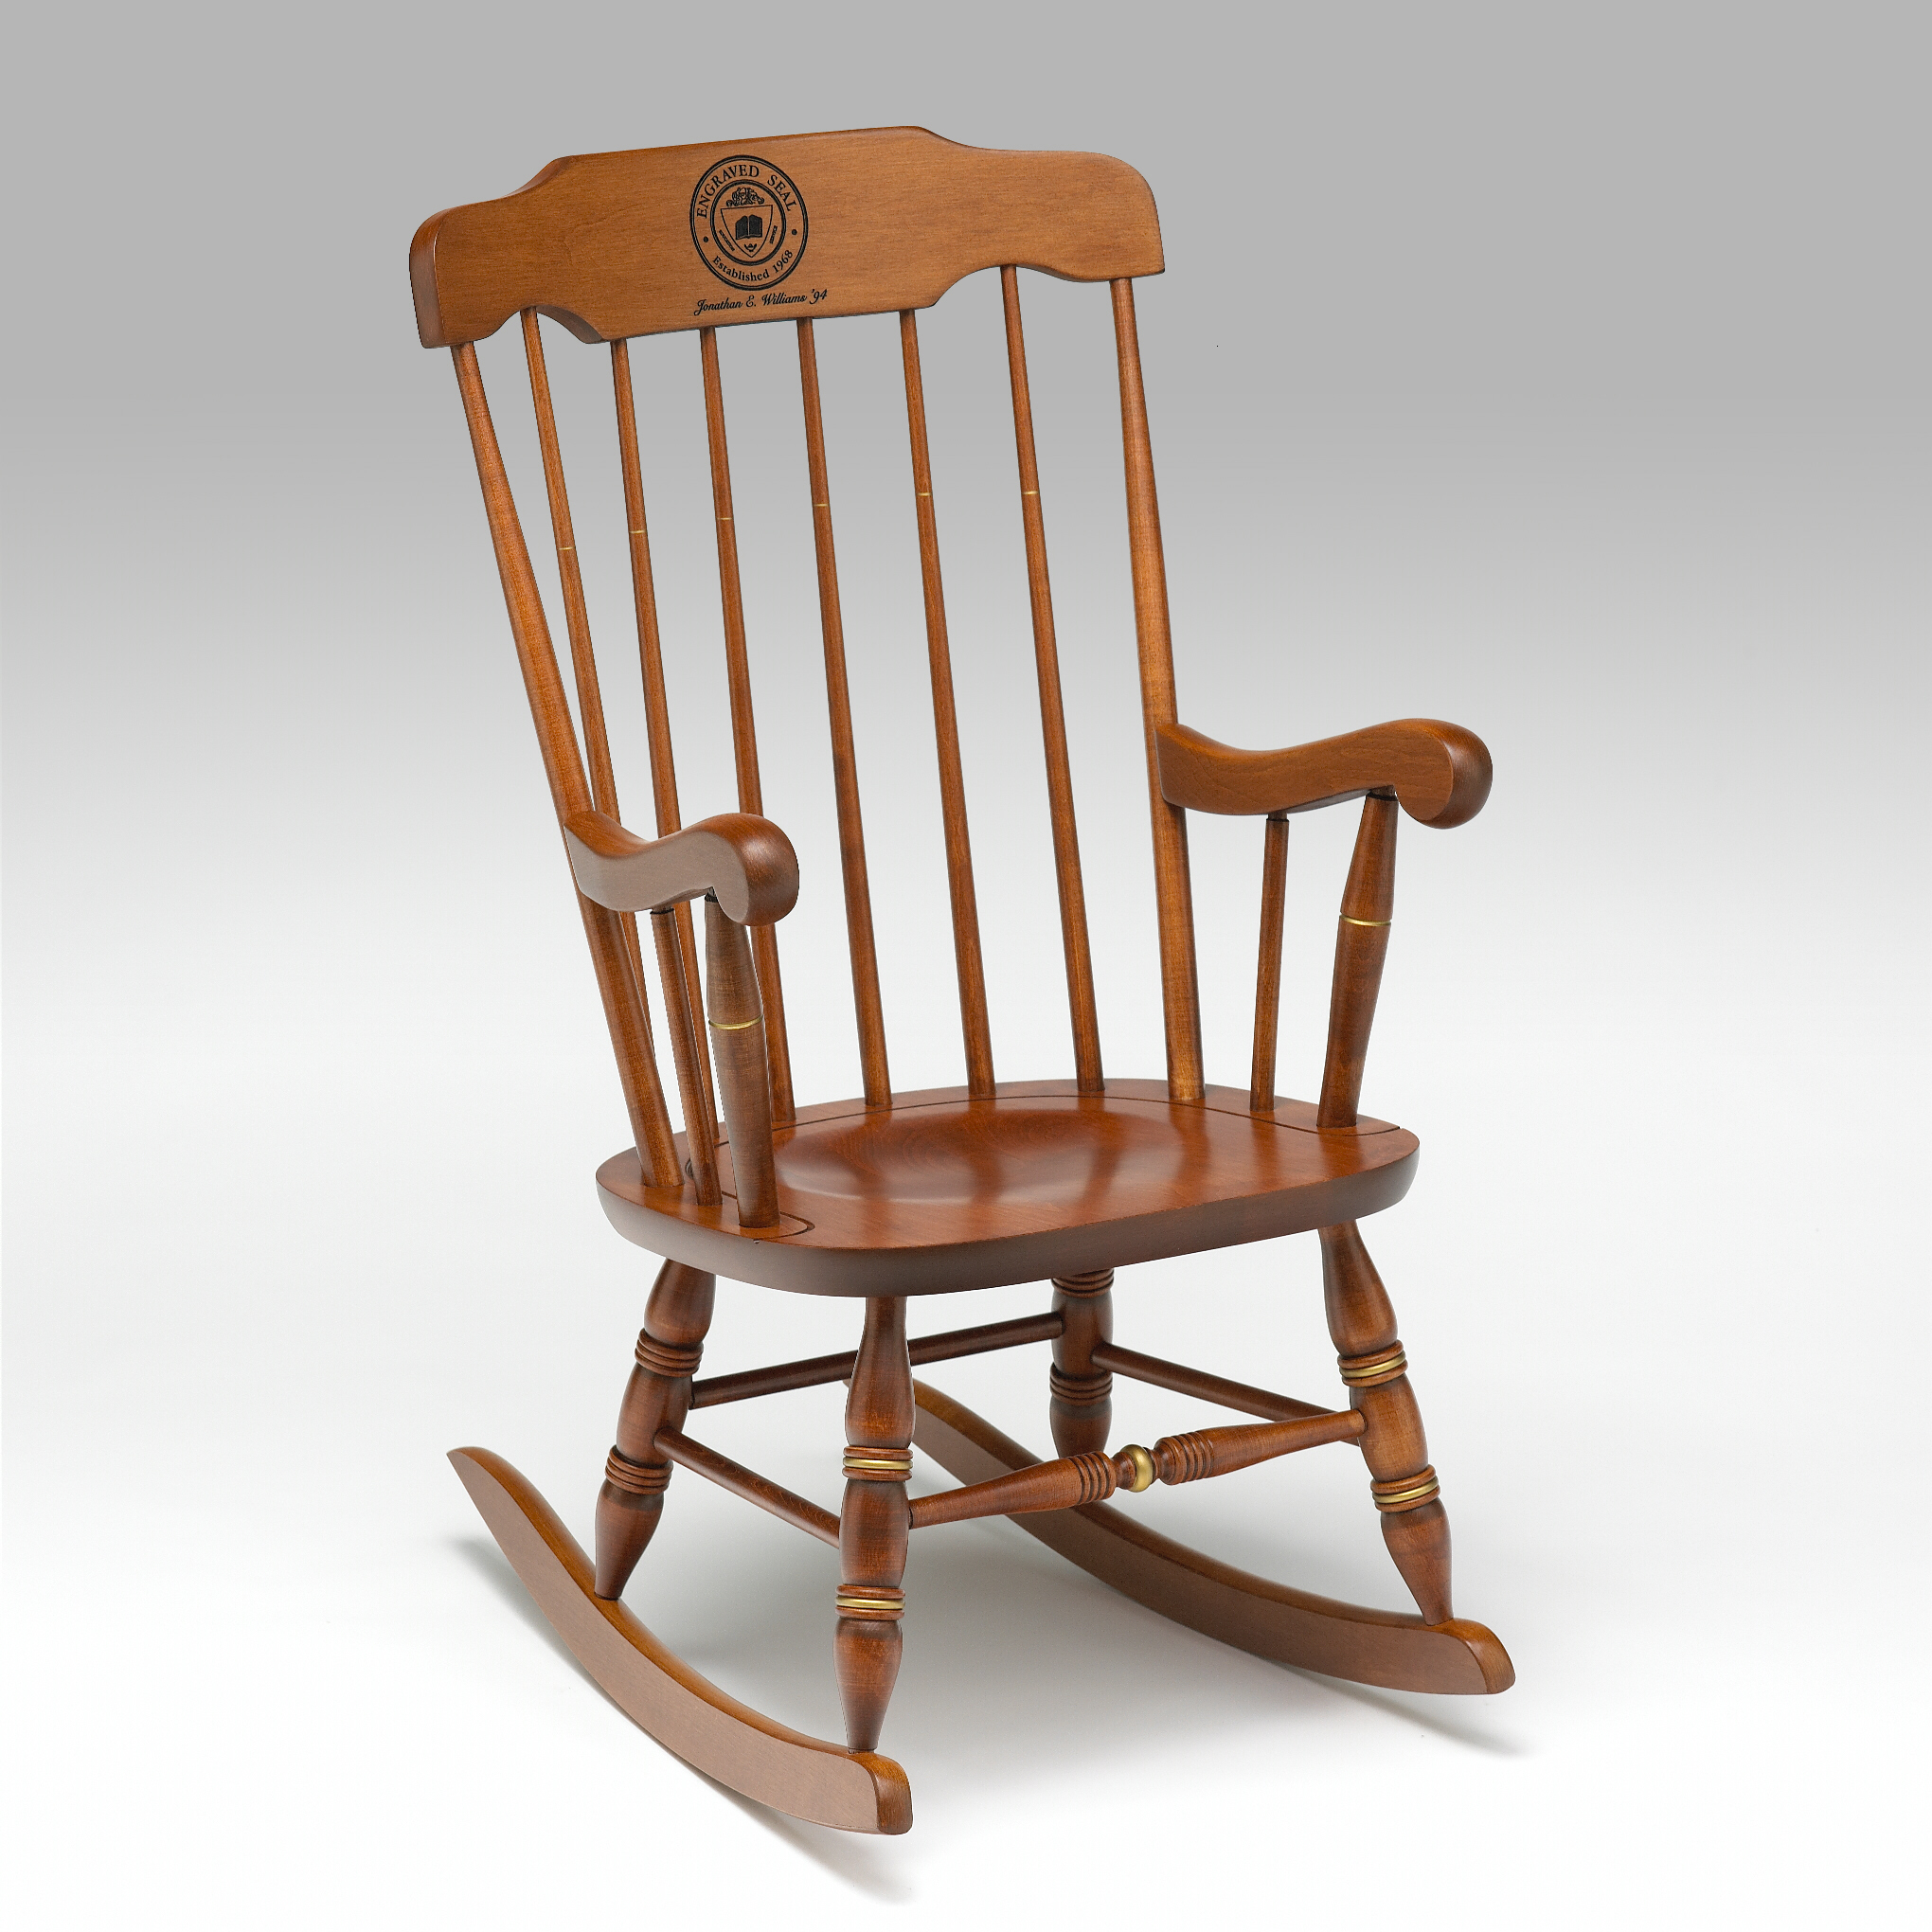 Rocking Chair Question Help Me Safely Disassemble A Rocking Chair Furniture Dit